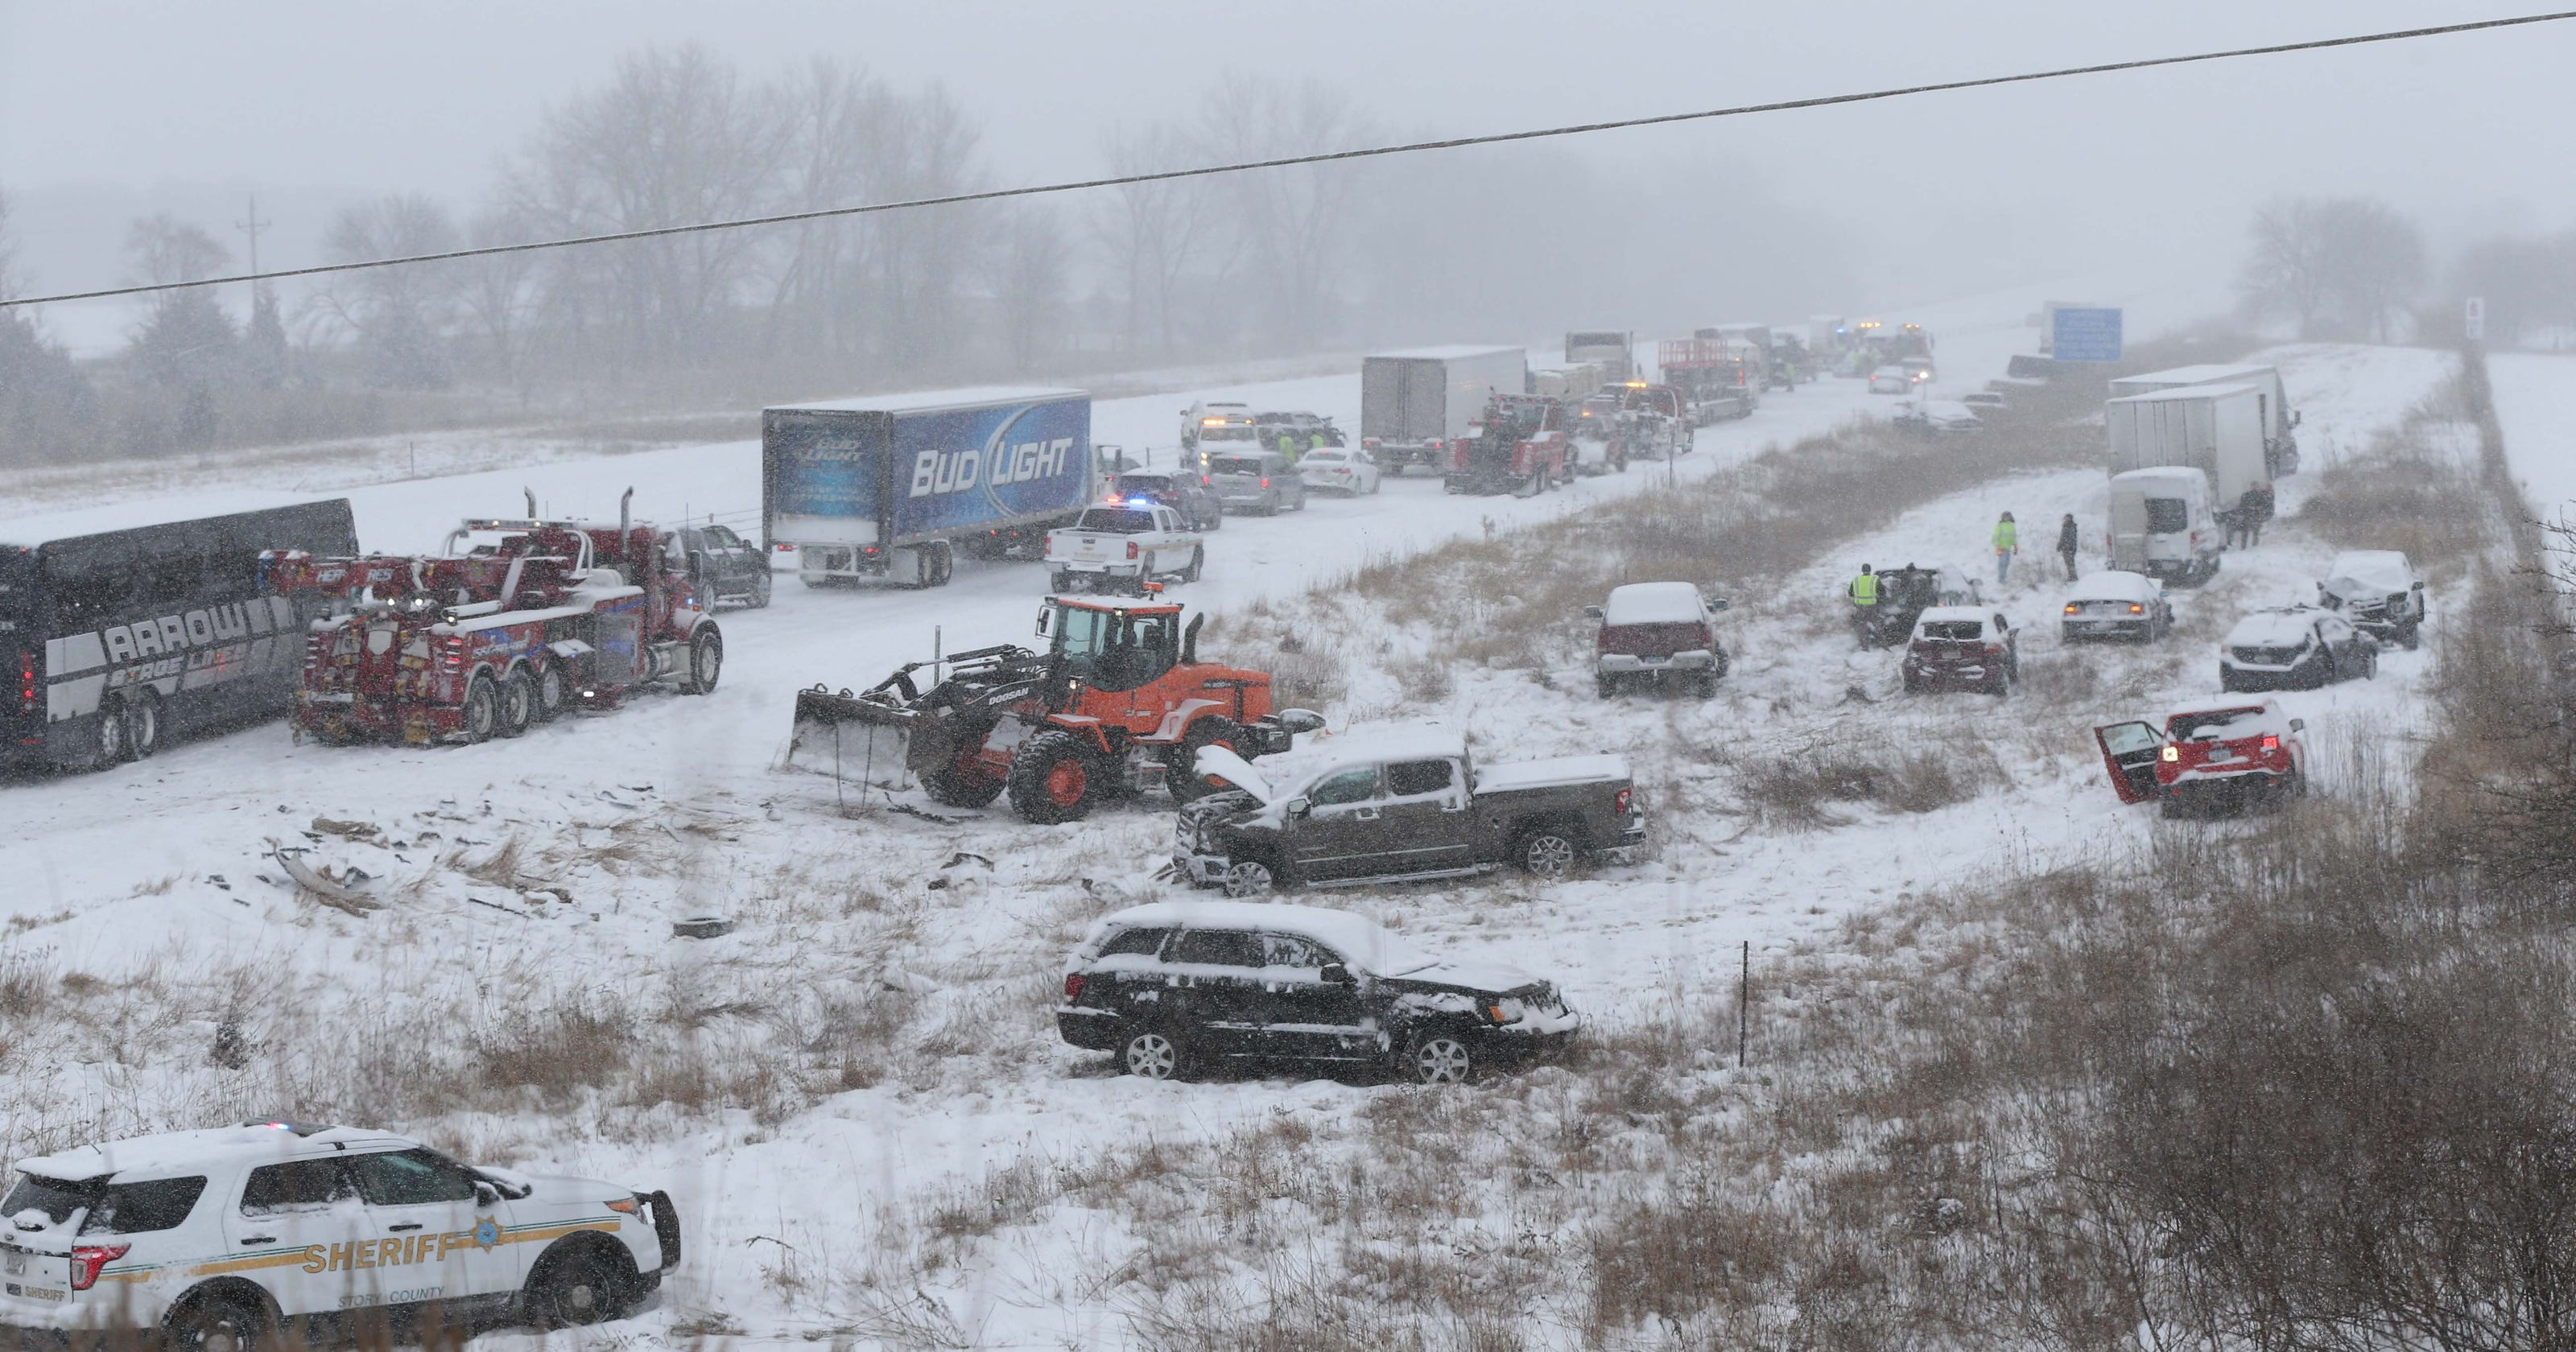 Death toll from Monday snowstorm rises to 9